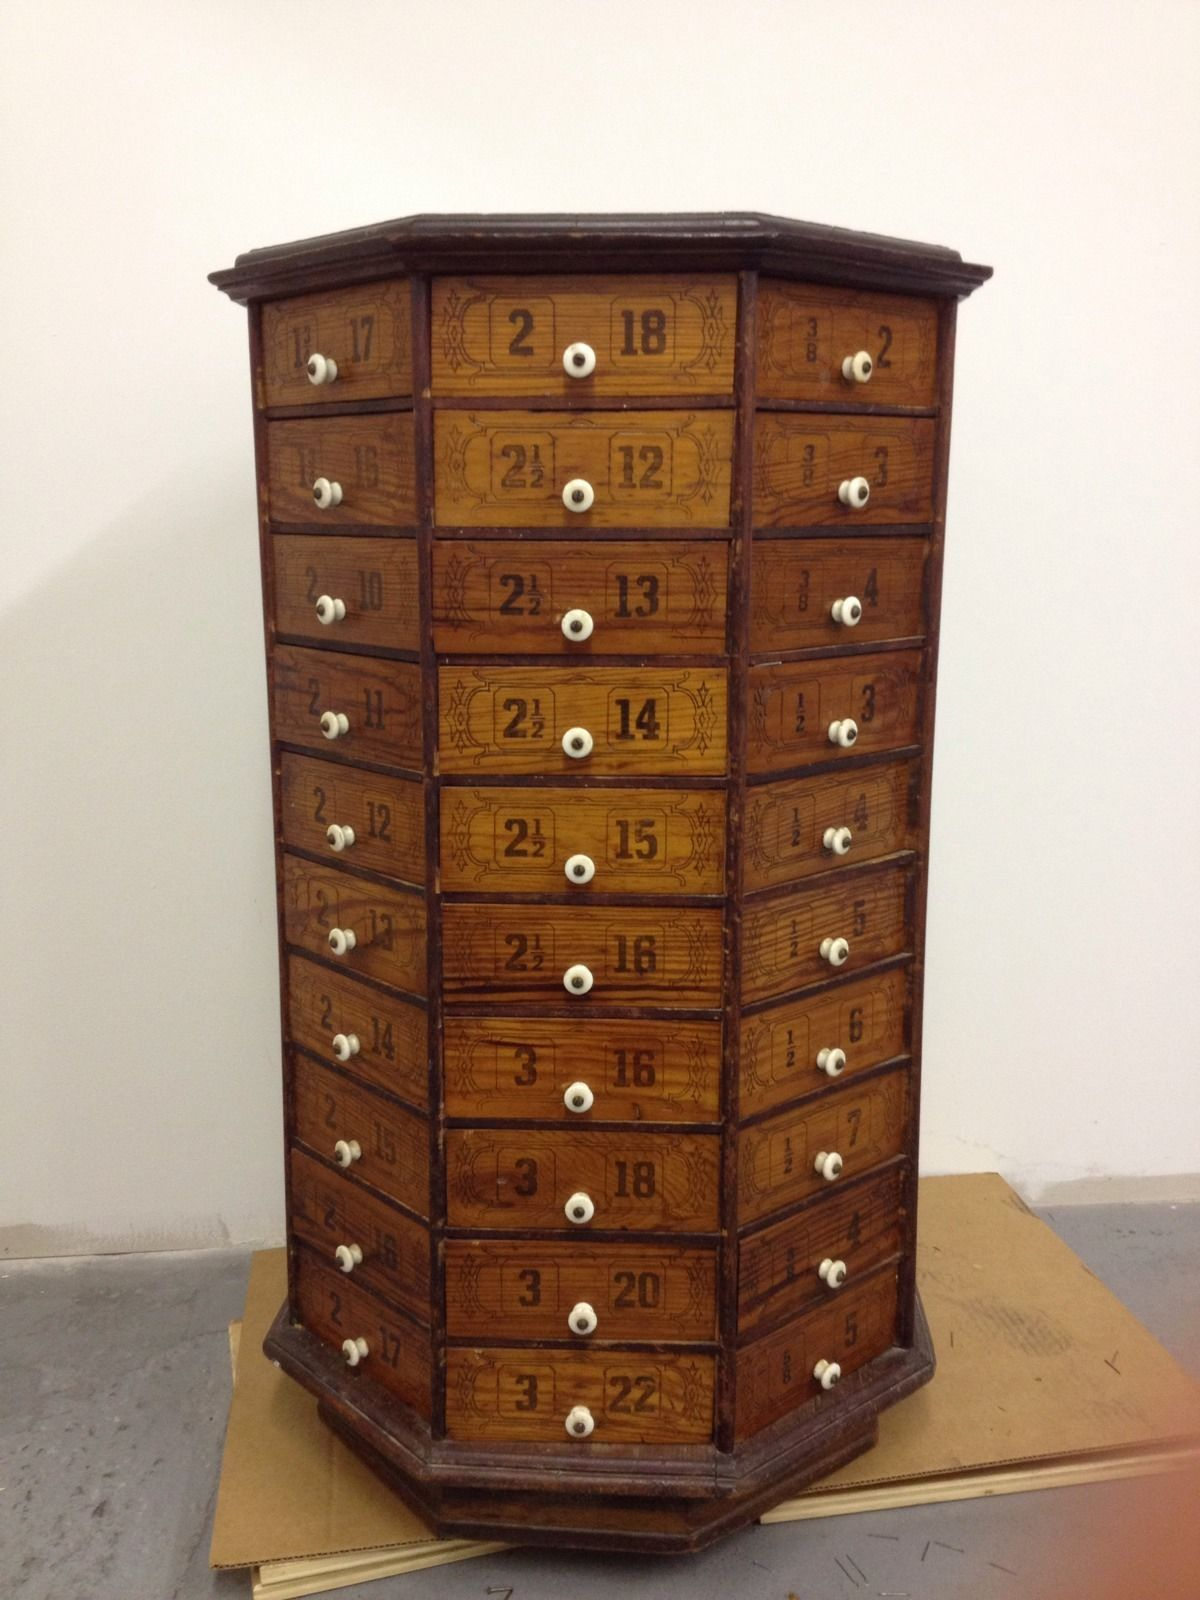 Charmant Antique Wood Hardware Store Cabinet 80 Drawers Rotates | EBay